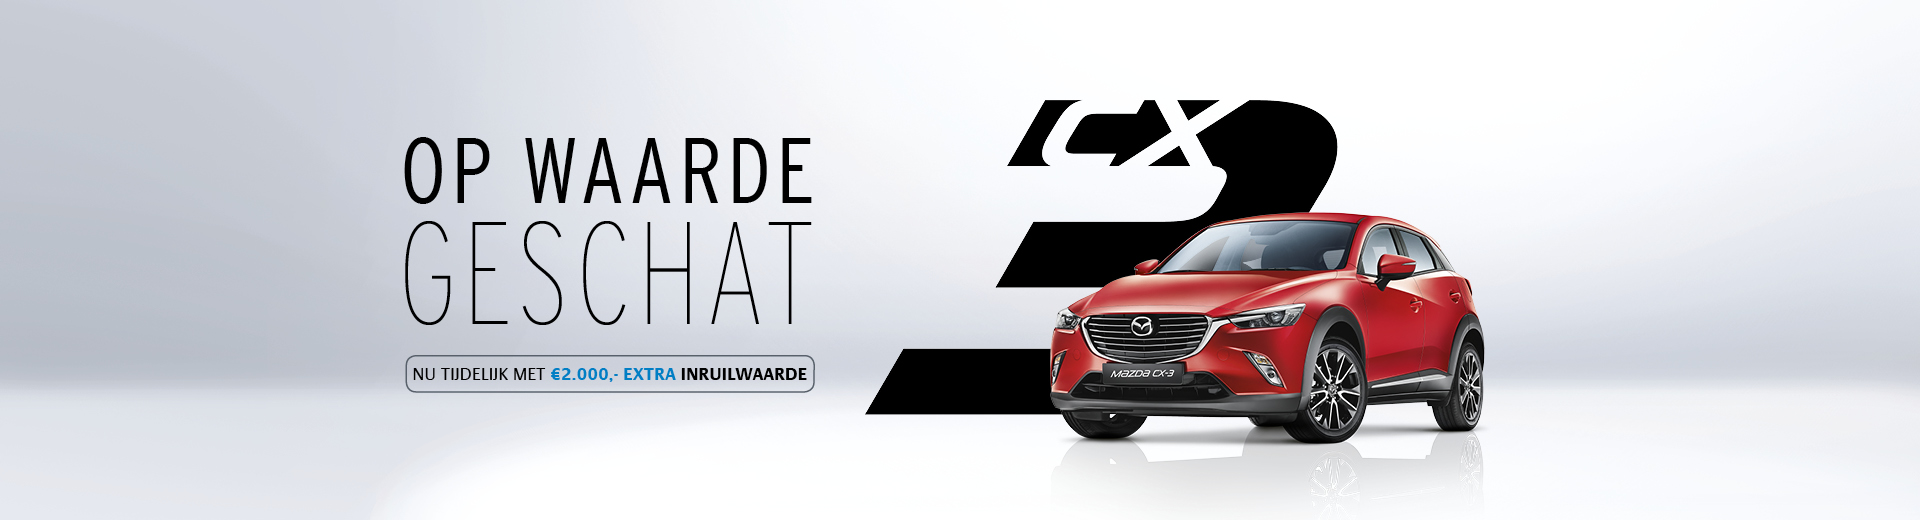 170887 Banner Mazda CX-3 Product_Restwaarde - 1920x520px